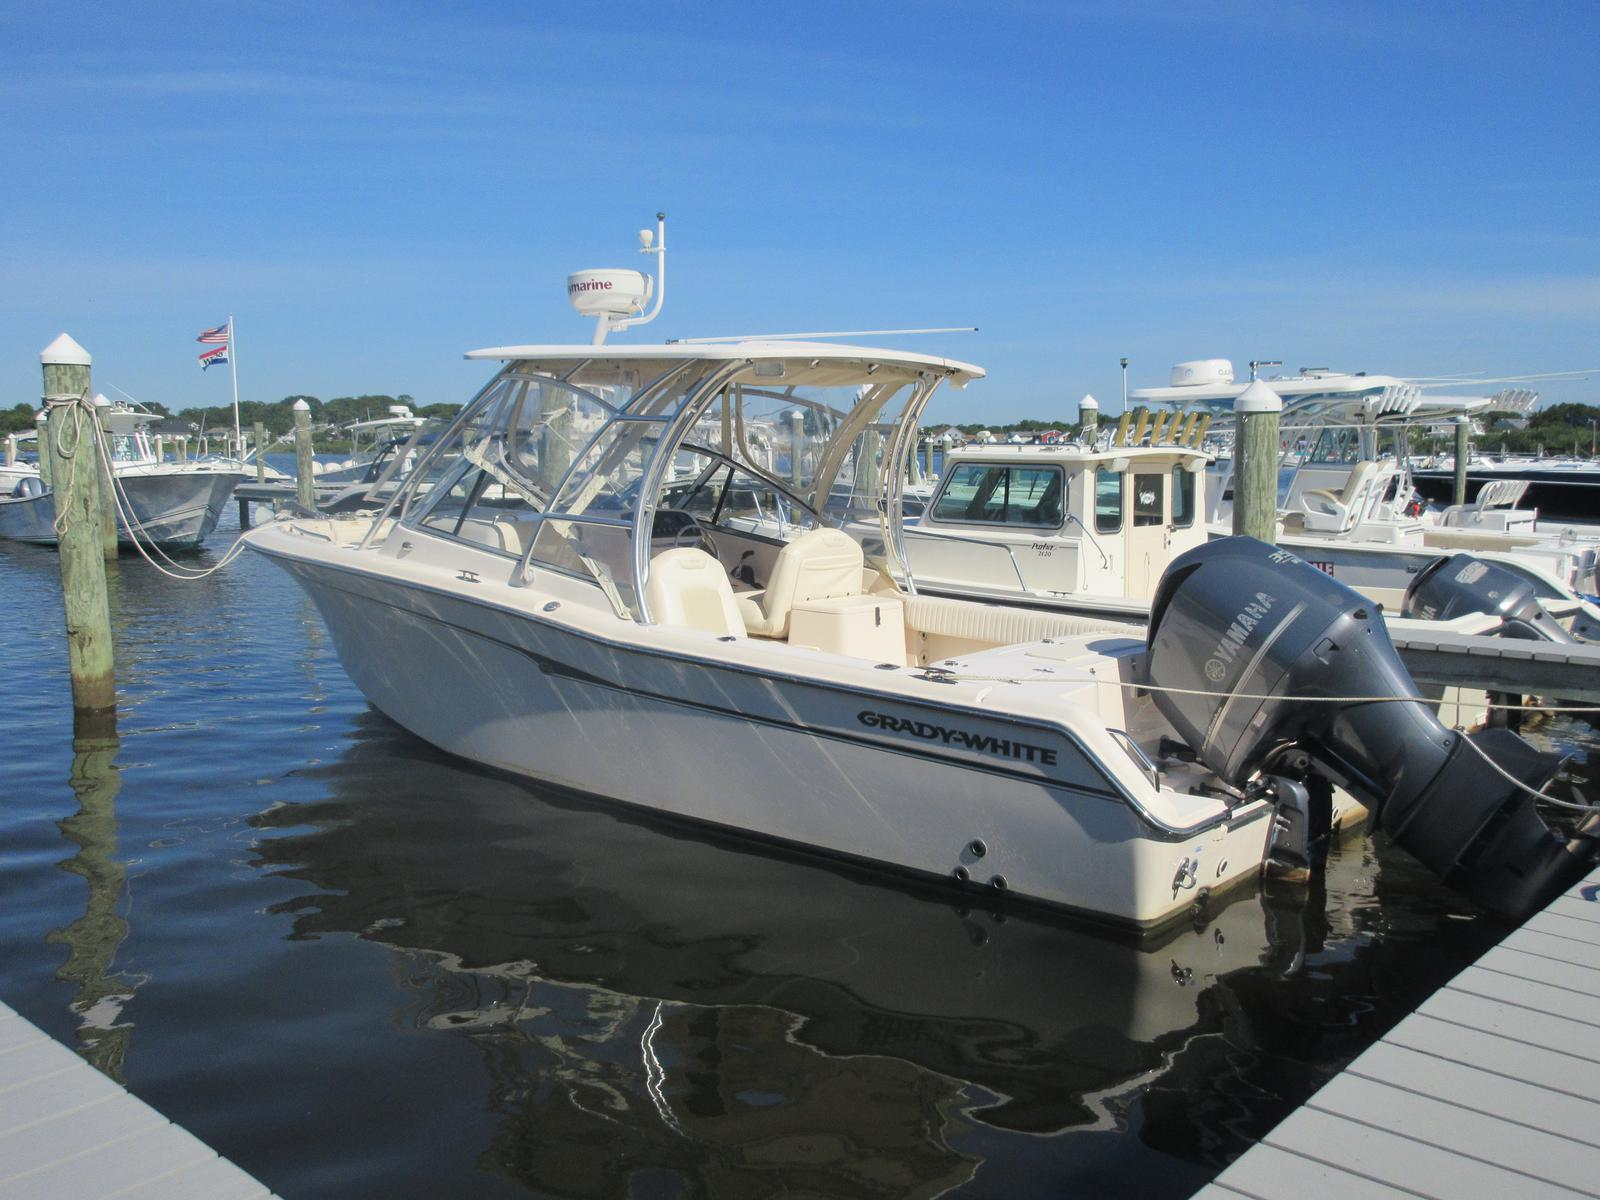 Inventory from Grady-White Comstock Yacht Sales & Marina Brick, NJ